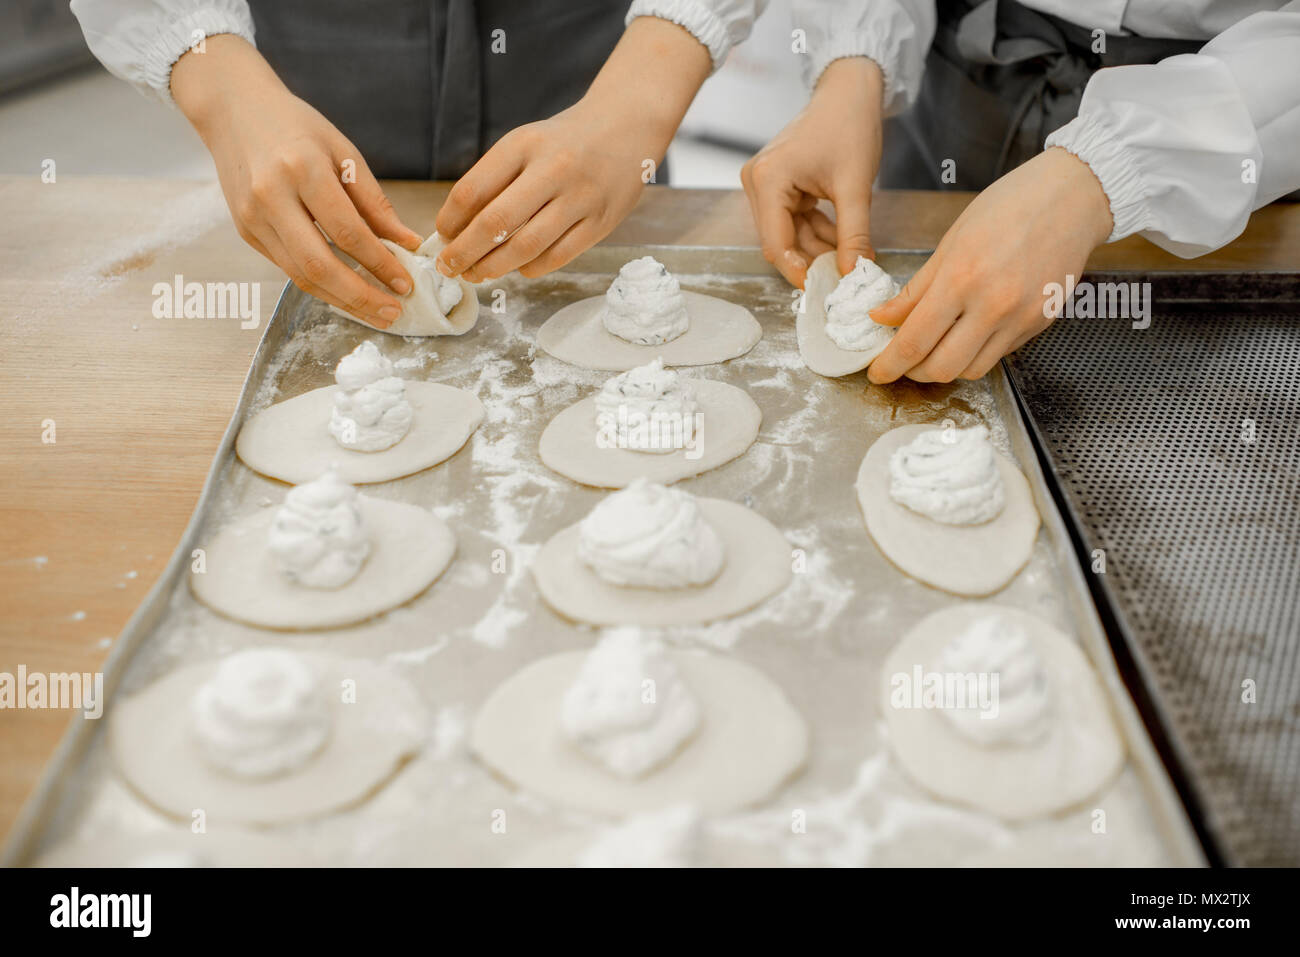 Forming buns at the manufacturing - Stock Image